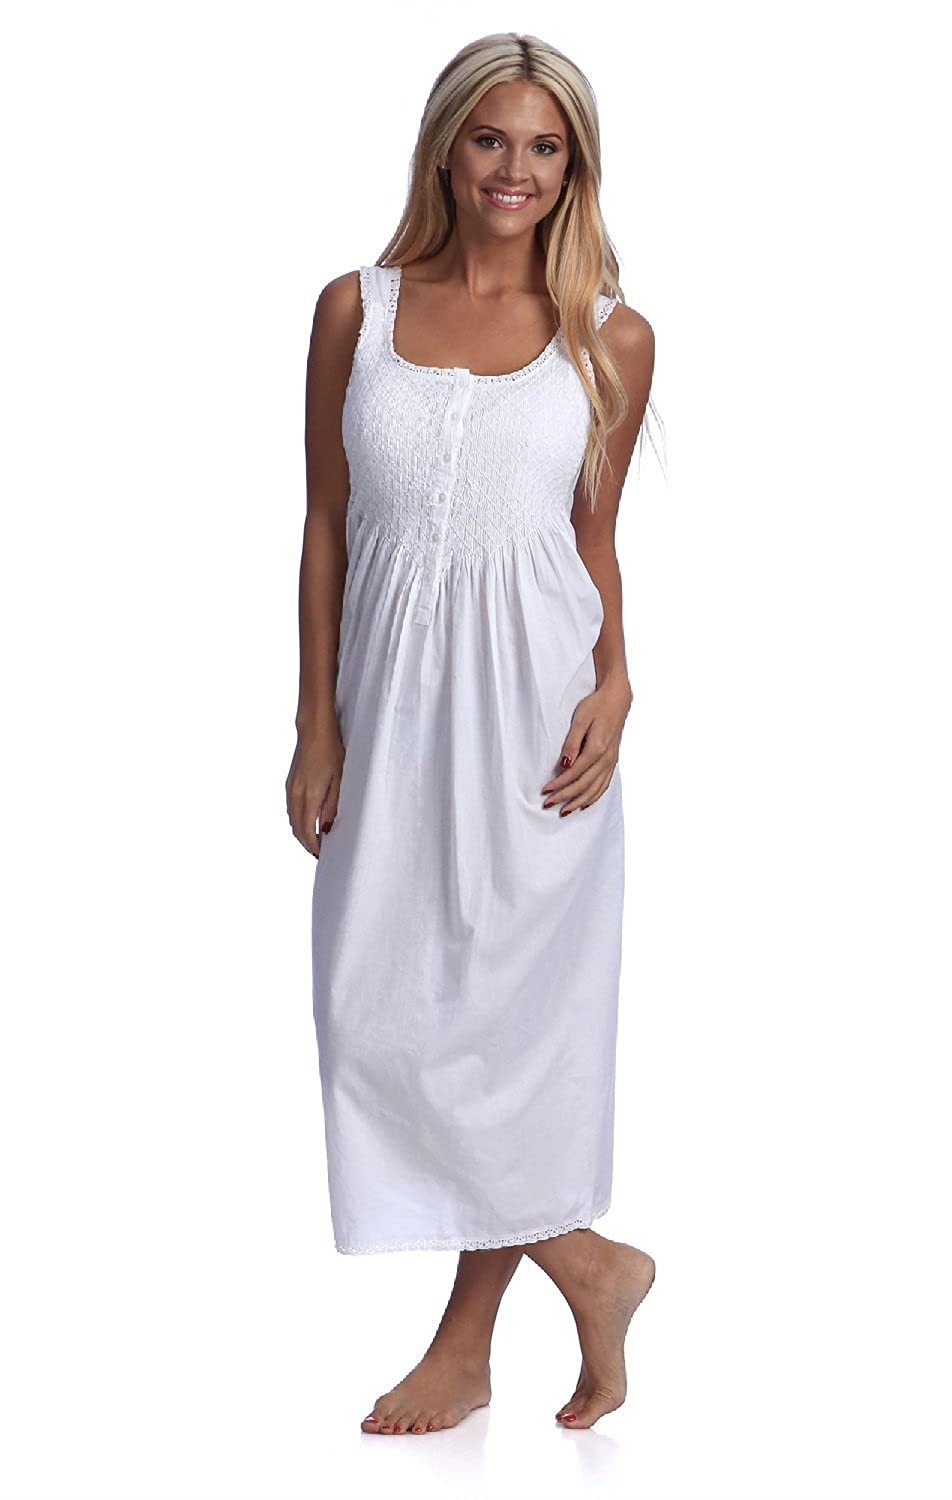 e05e09514874 Handmade Women s Smock Tatting Lace Full-Length Nightgown White